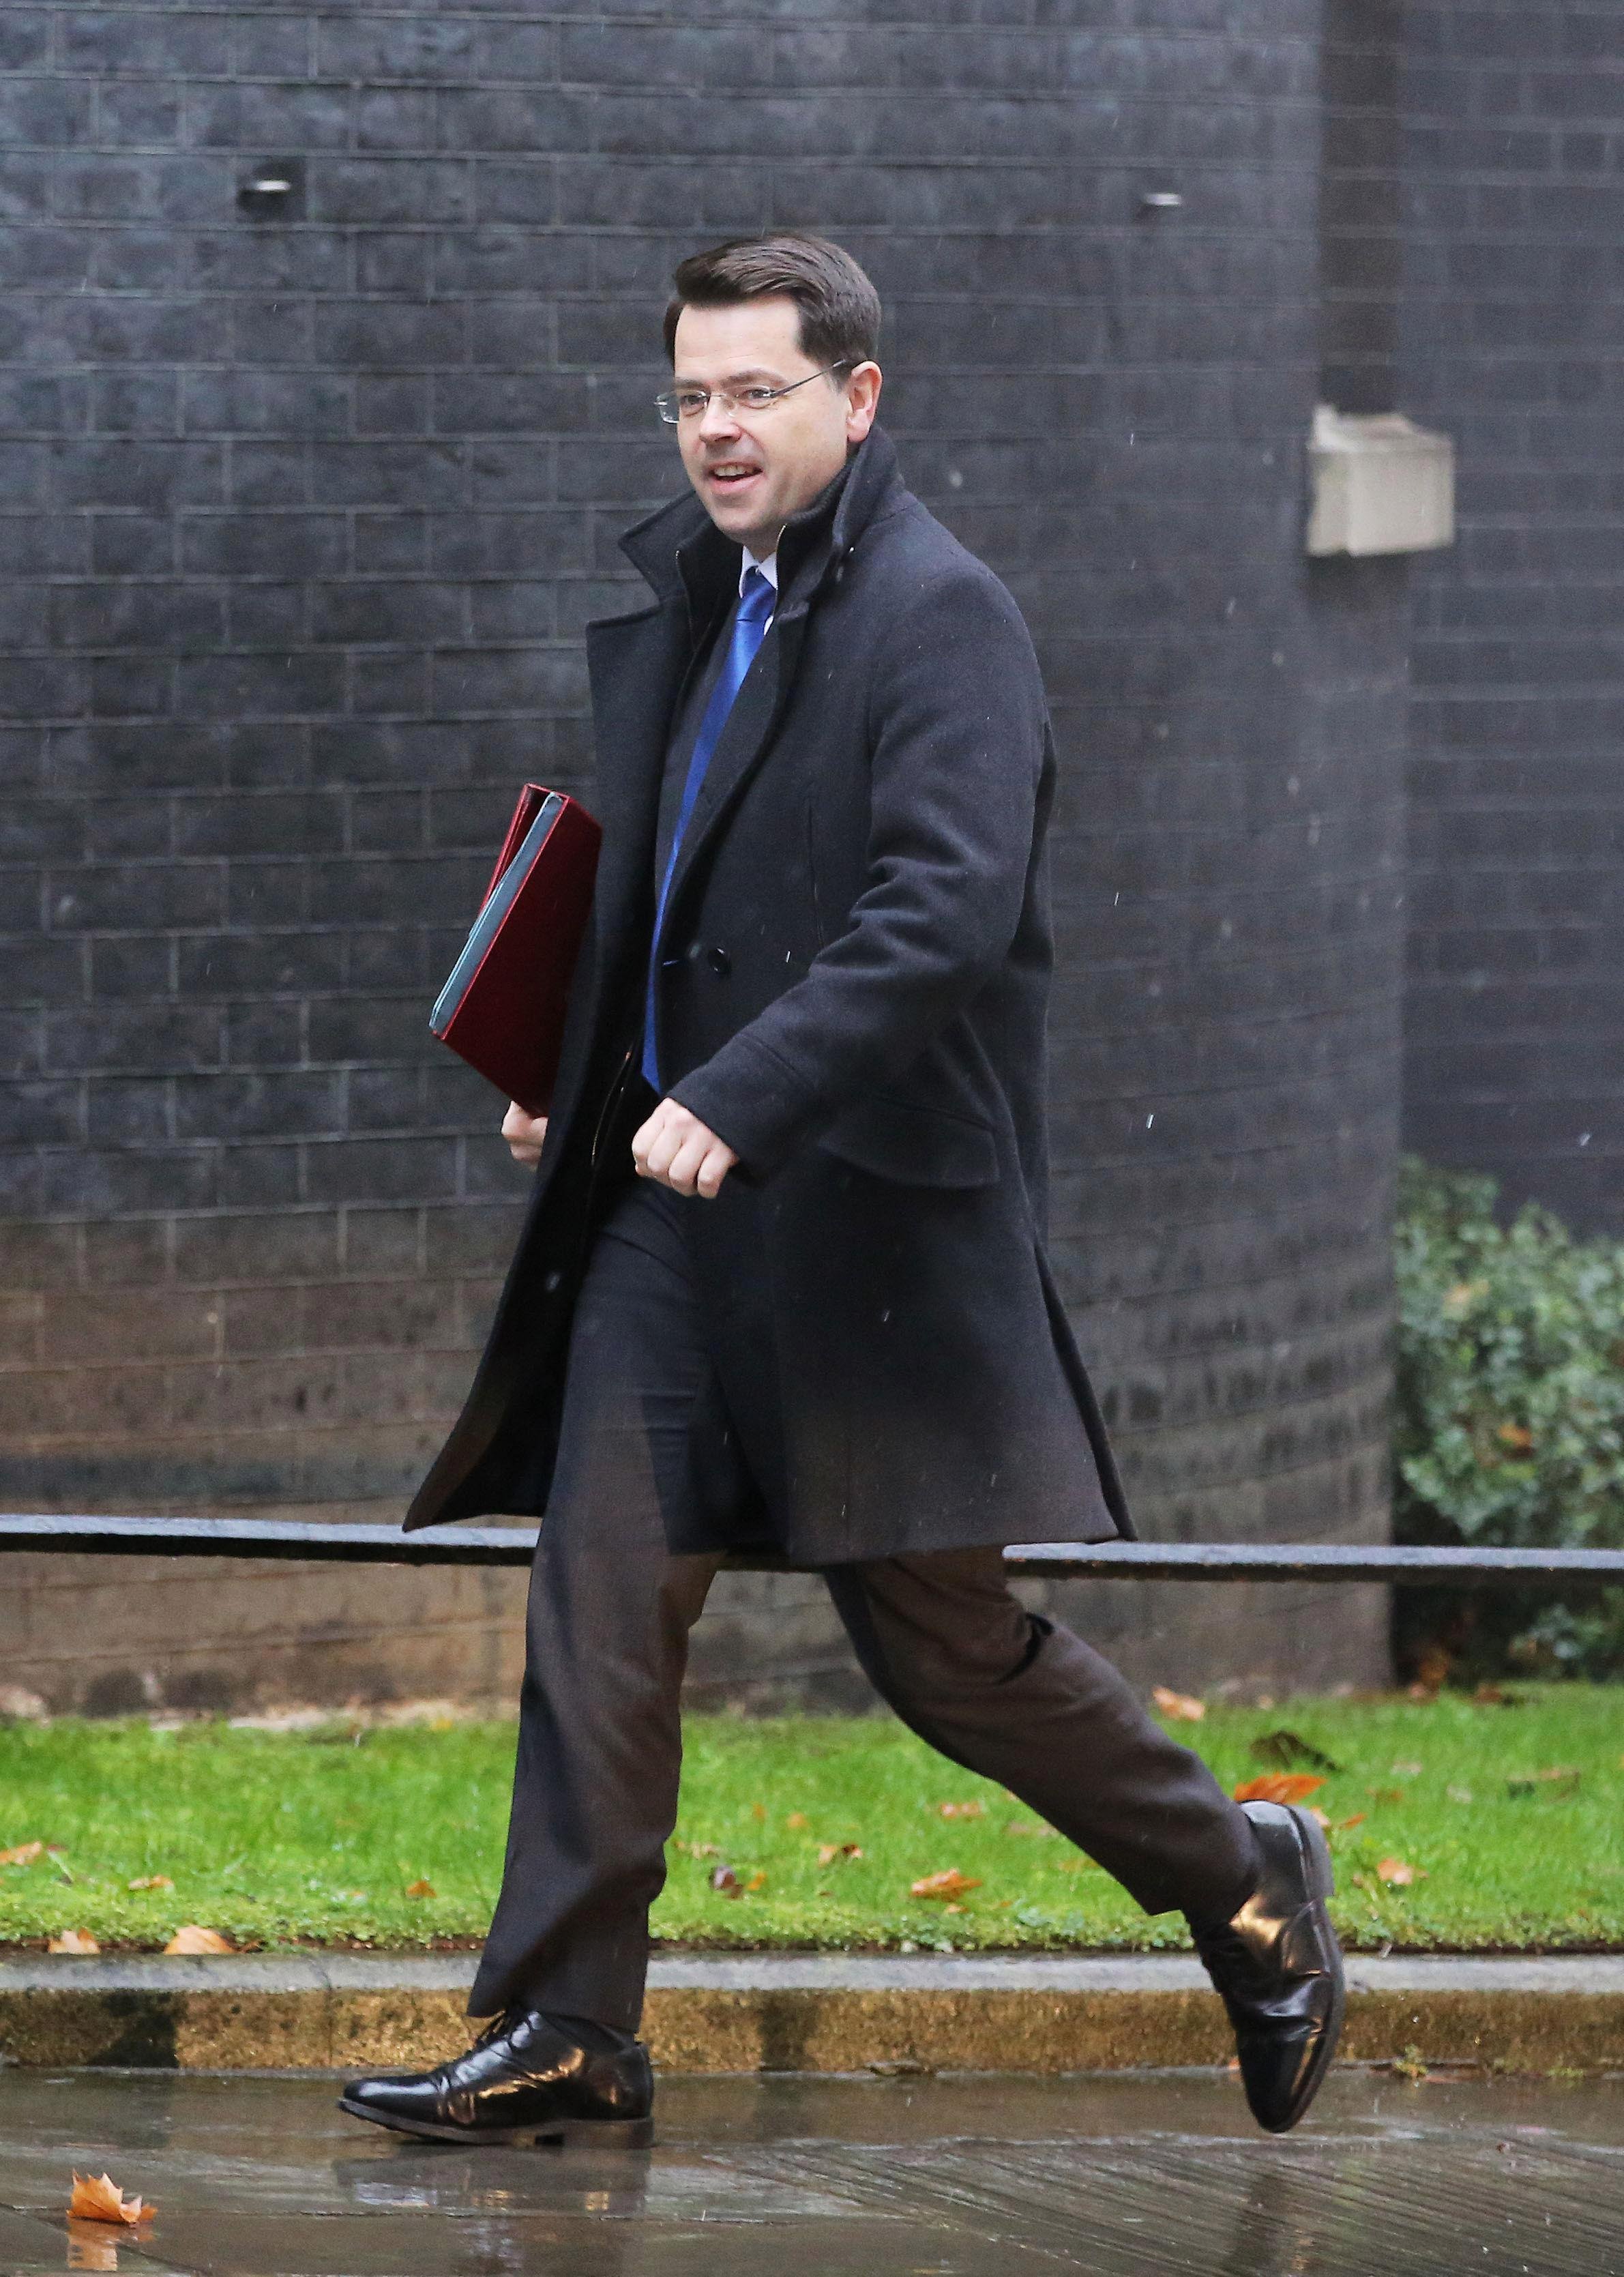 Northern Ireland Secretary James Brokenshire resigns and will be leaving Government citing 'ill-health'